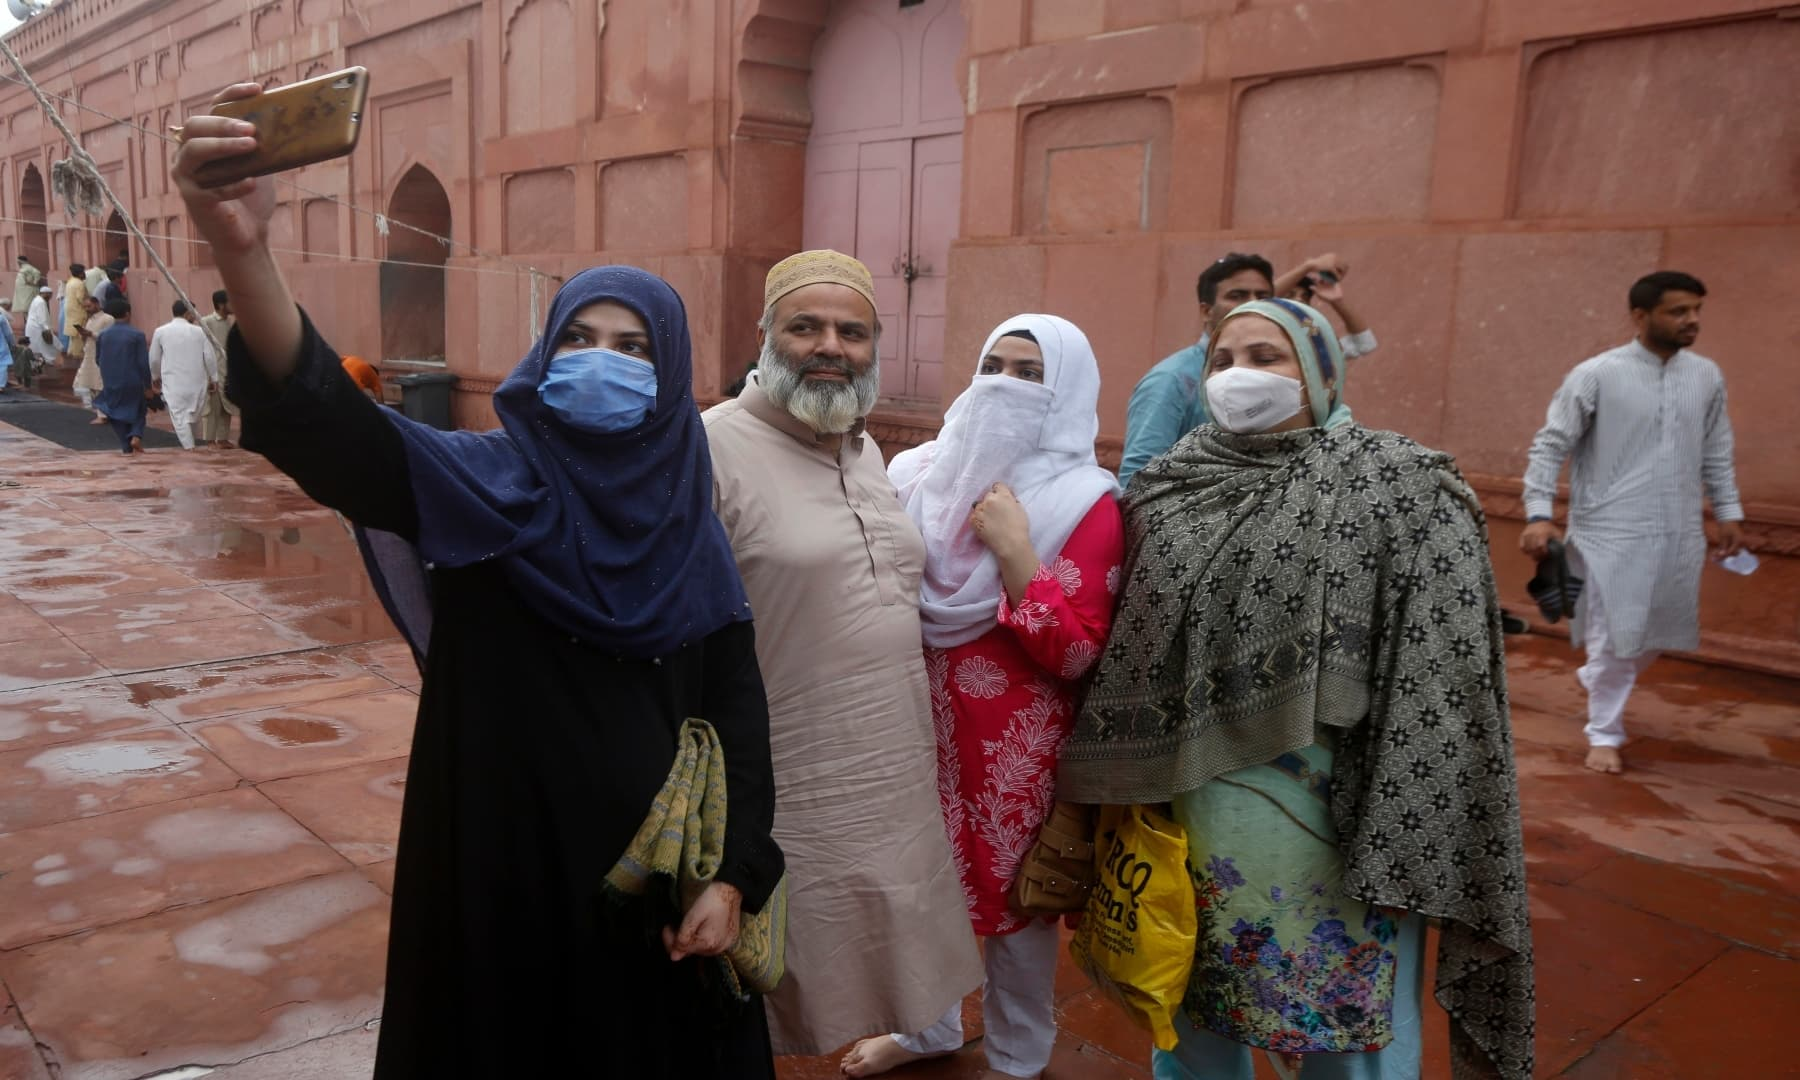 A family takes a selfie after Eidul Azha prayers at Badshahi mosque in Lahore. — AP